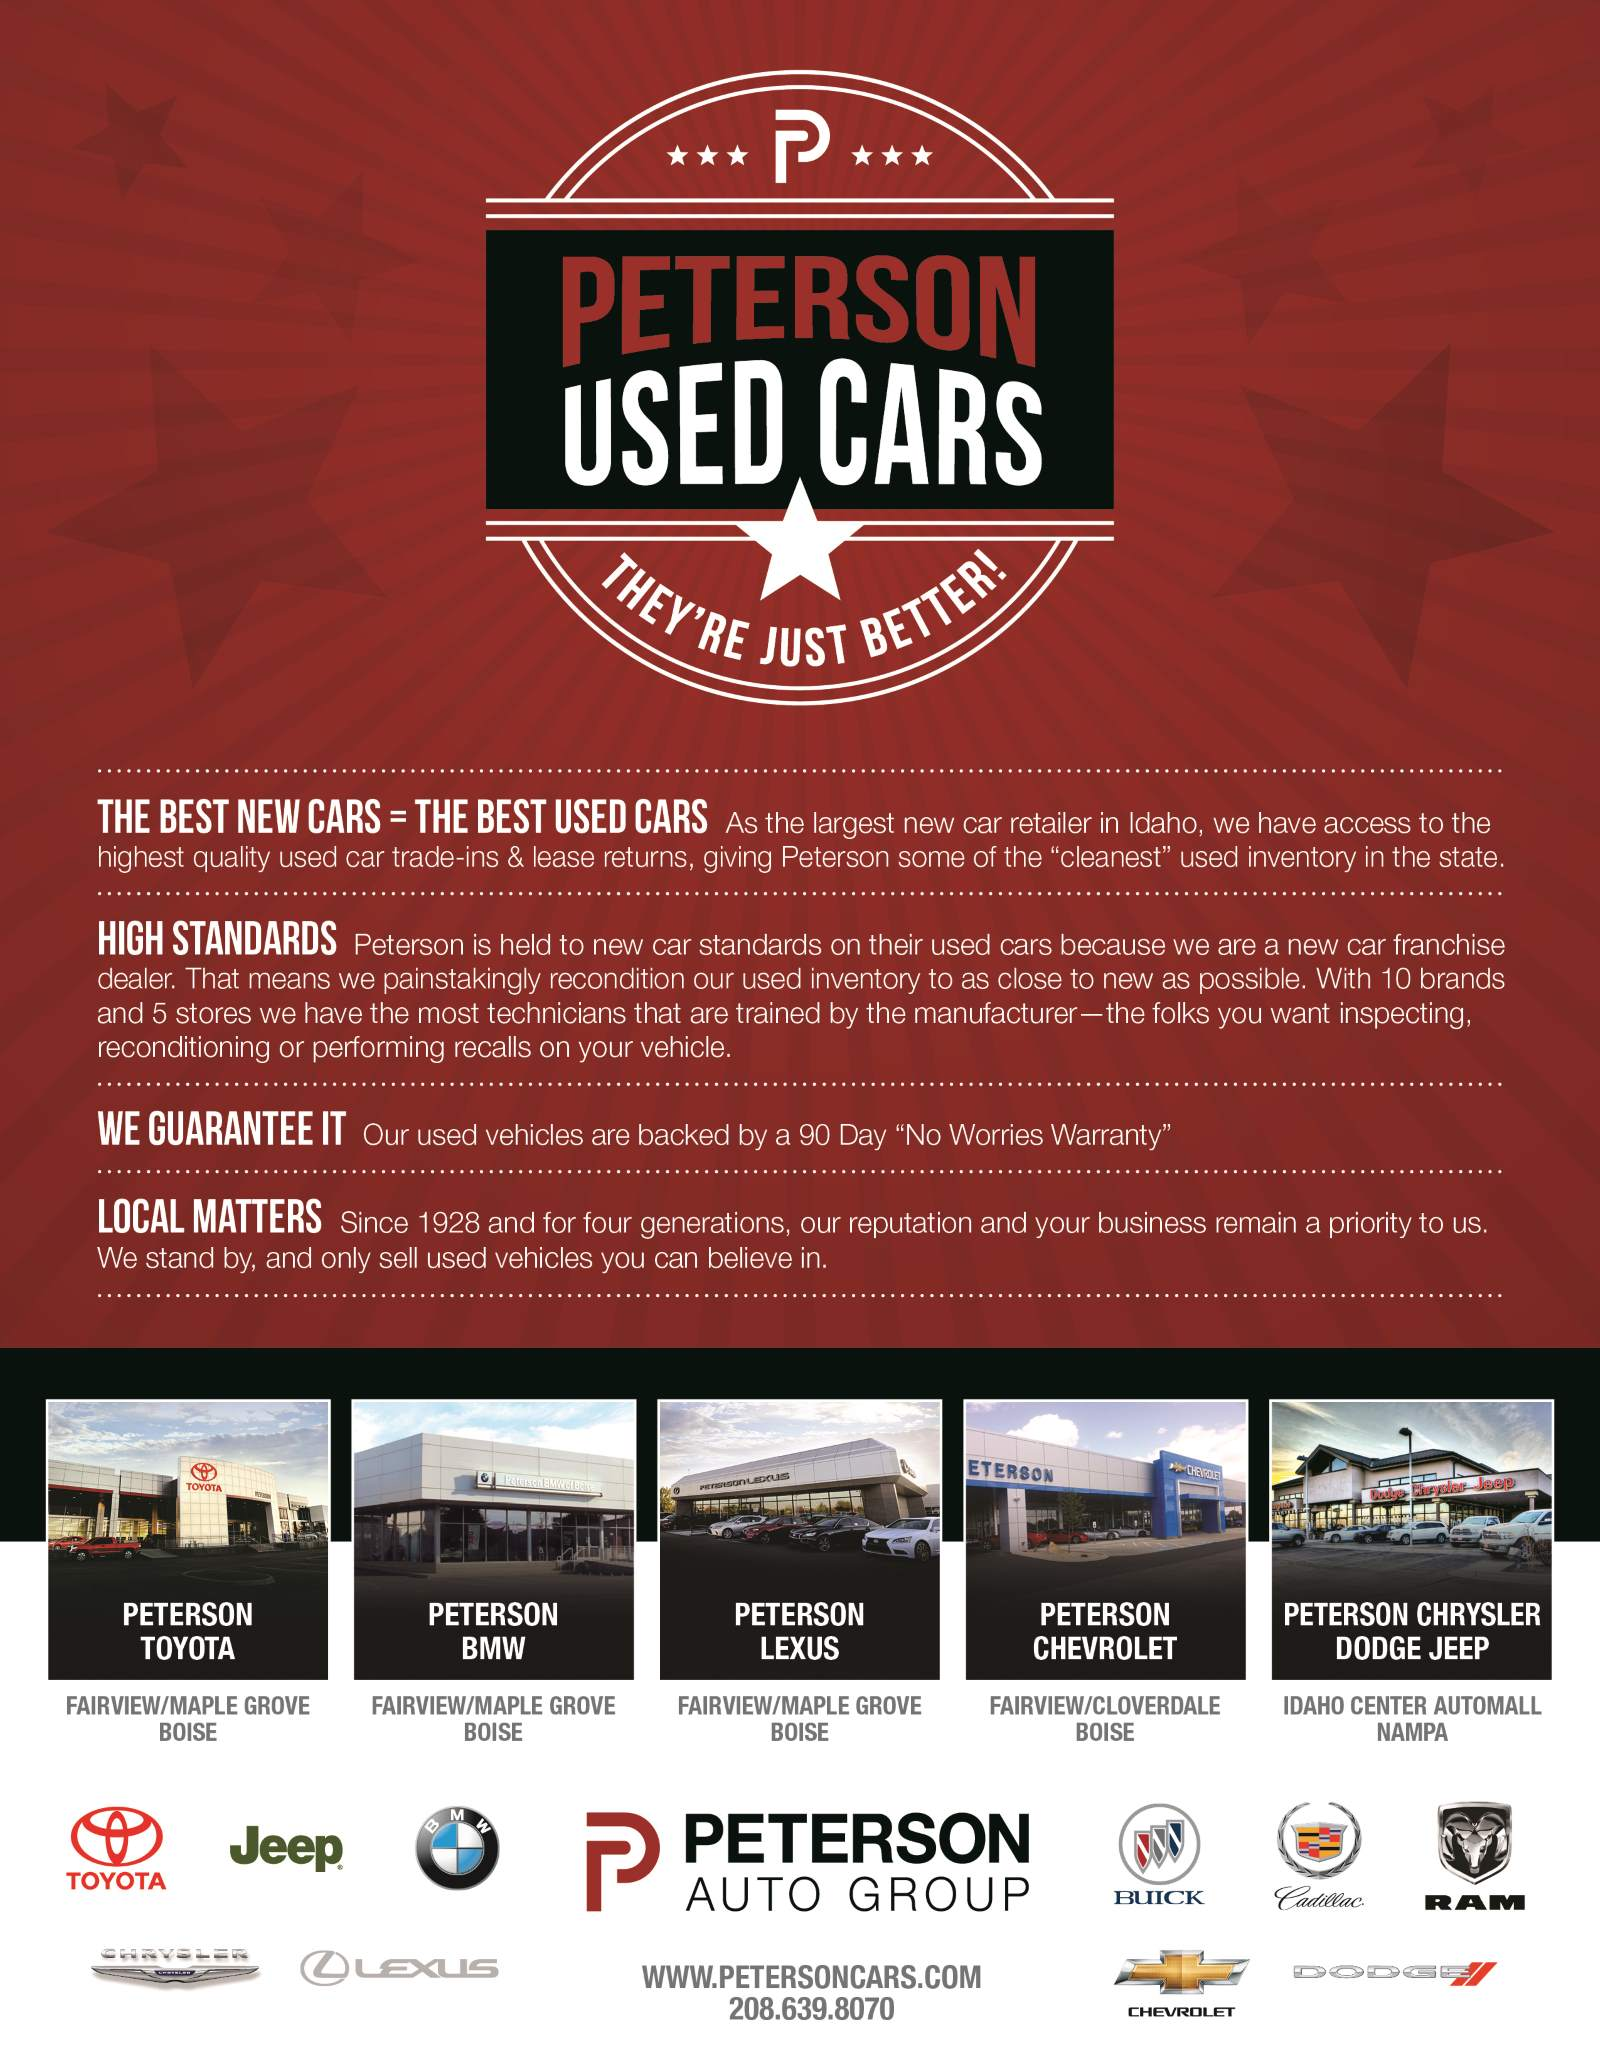 Peterson Used Cars features one of the highest quality used car inventories in Idaho